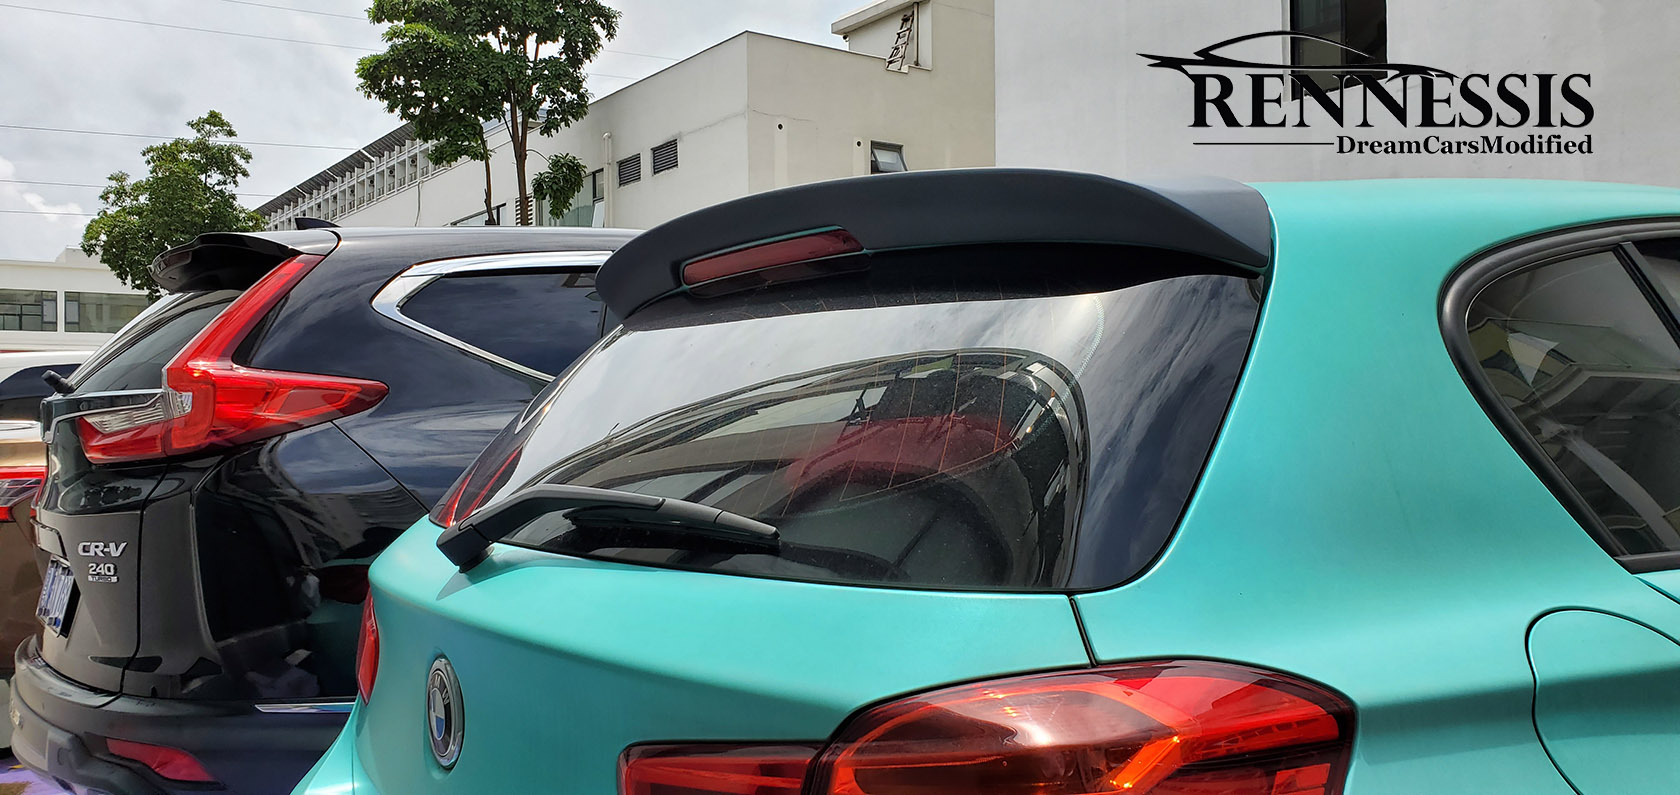 bmw-f20-f21-3d-syle-abs-gloss-black-rear-roof-spoiler-instaled-2.jpg